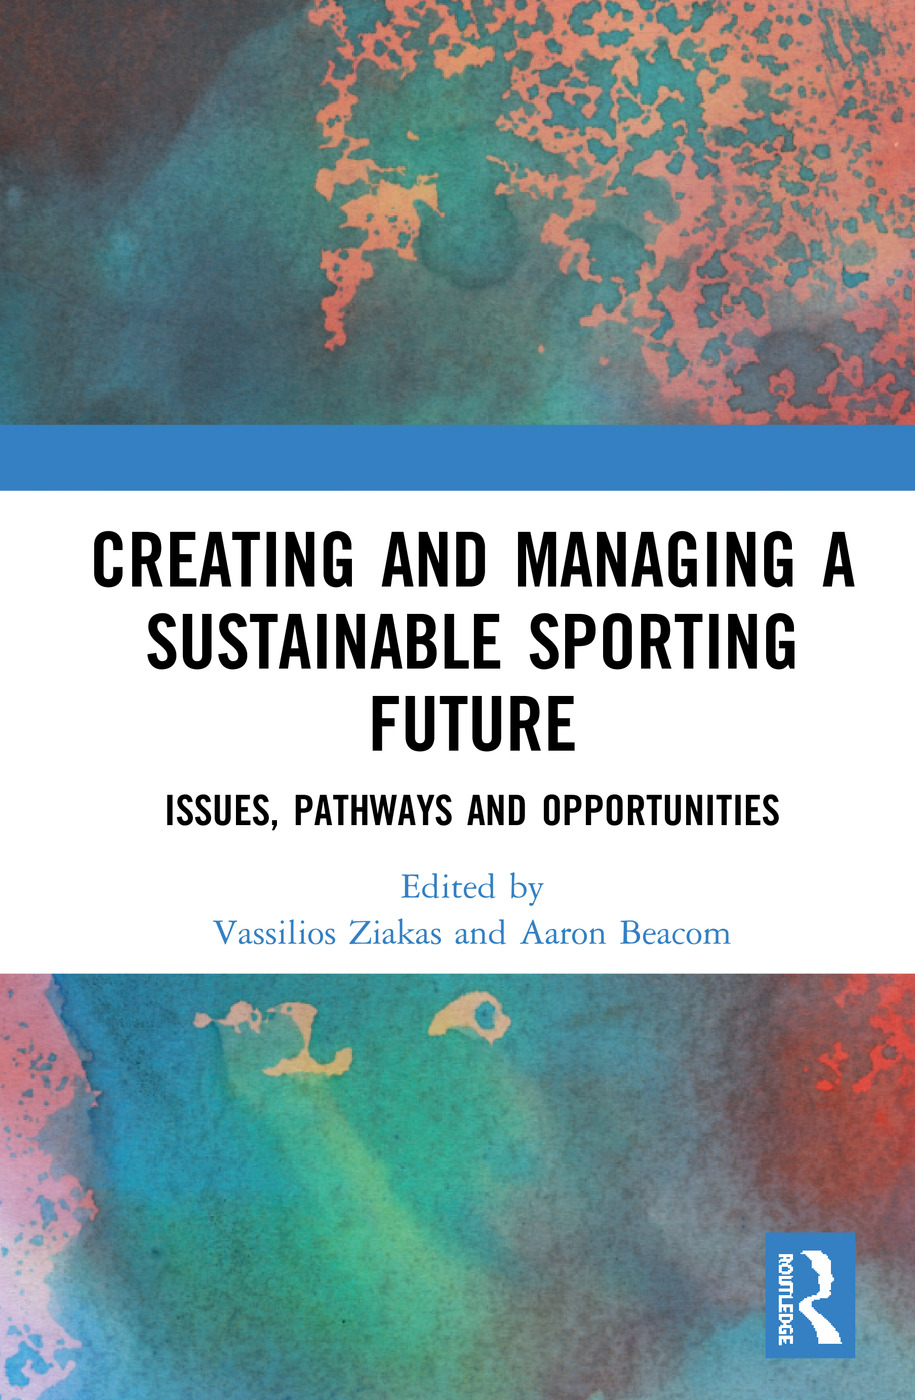 Creating and Managing a Sustainable Sporting Future: Issues, Pathways and Opportunities book cover